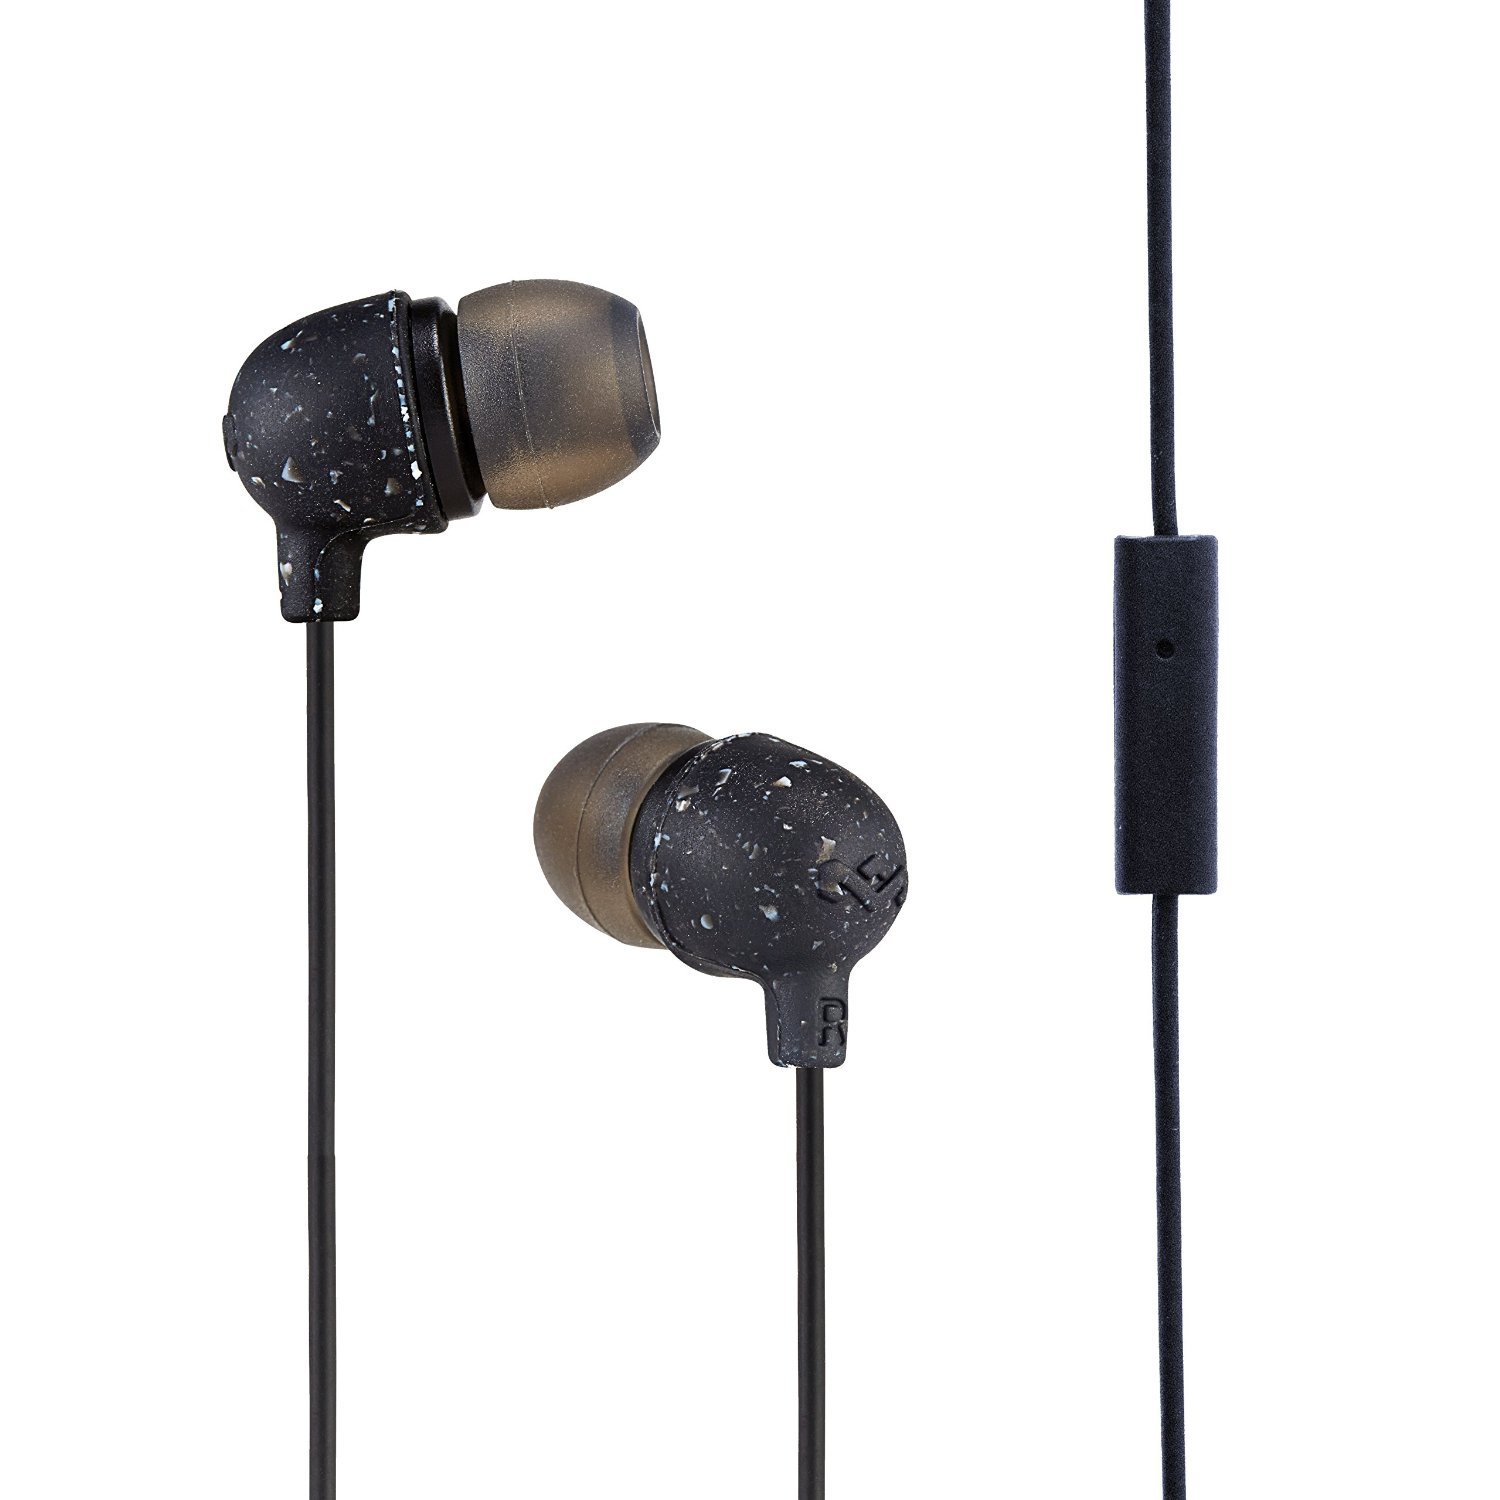 House of Marley Little Bird EM-JE061 In-Ear Headphone With Mic